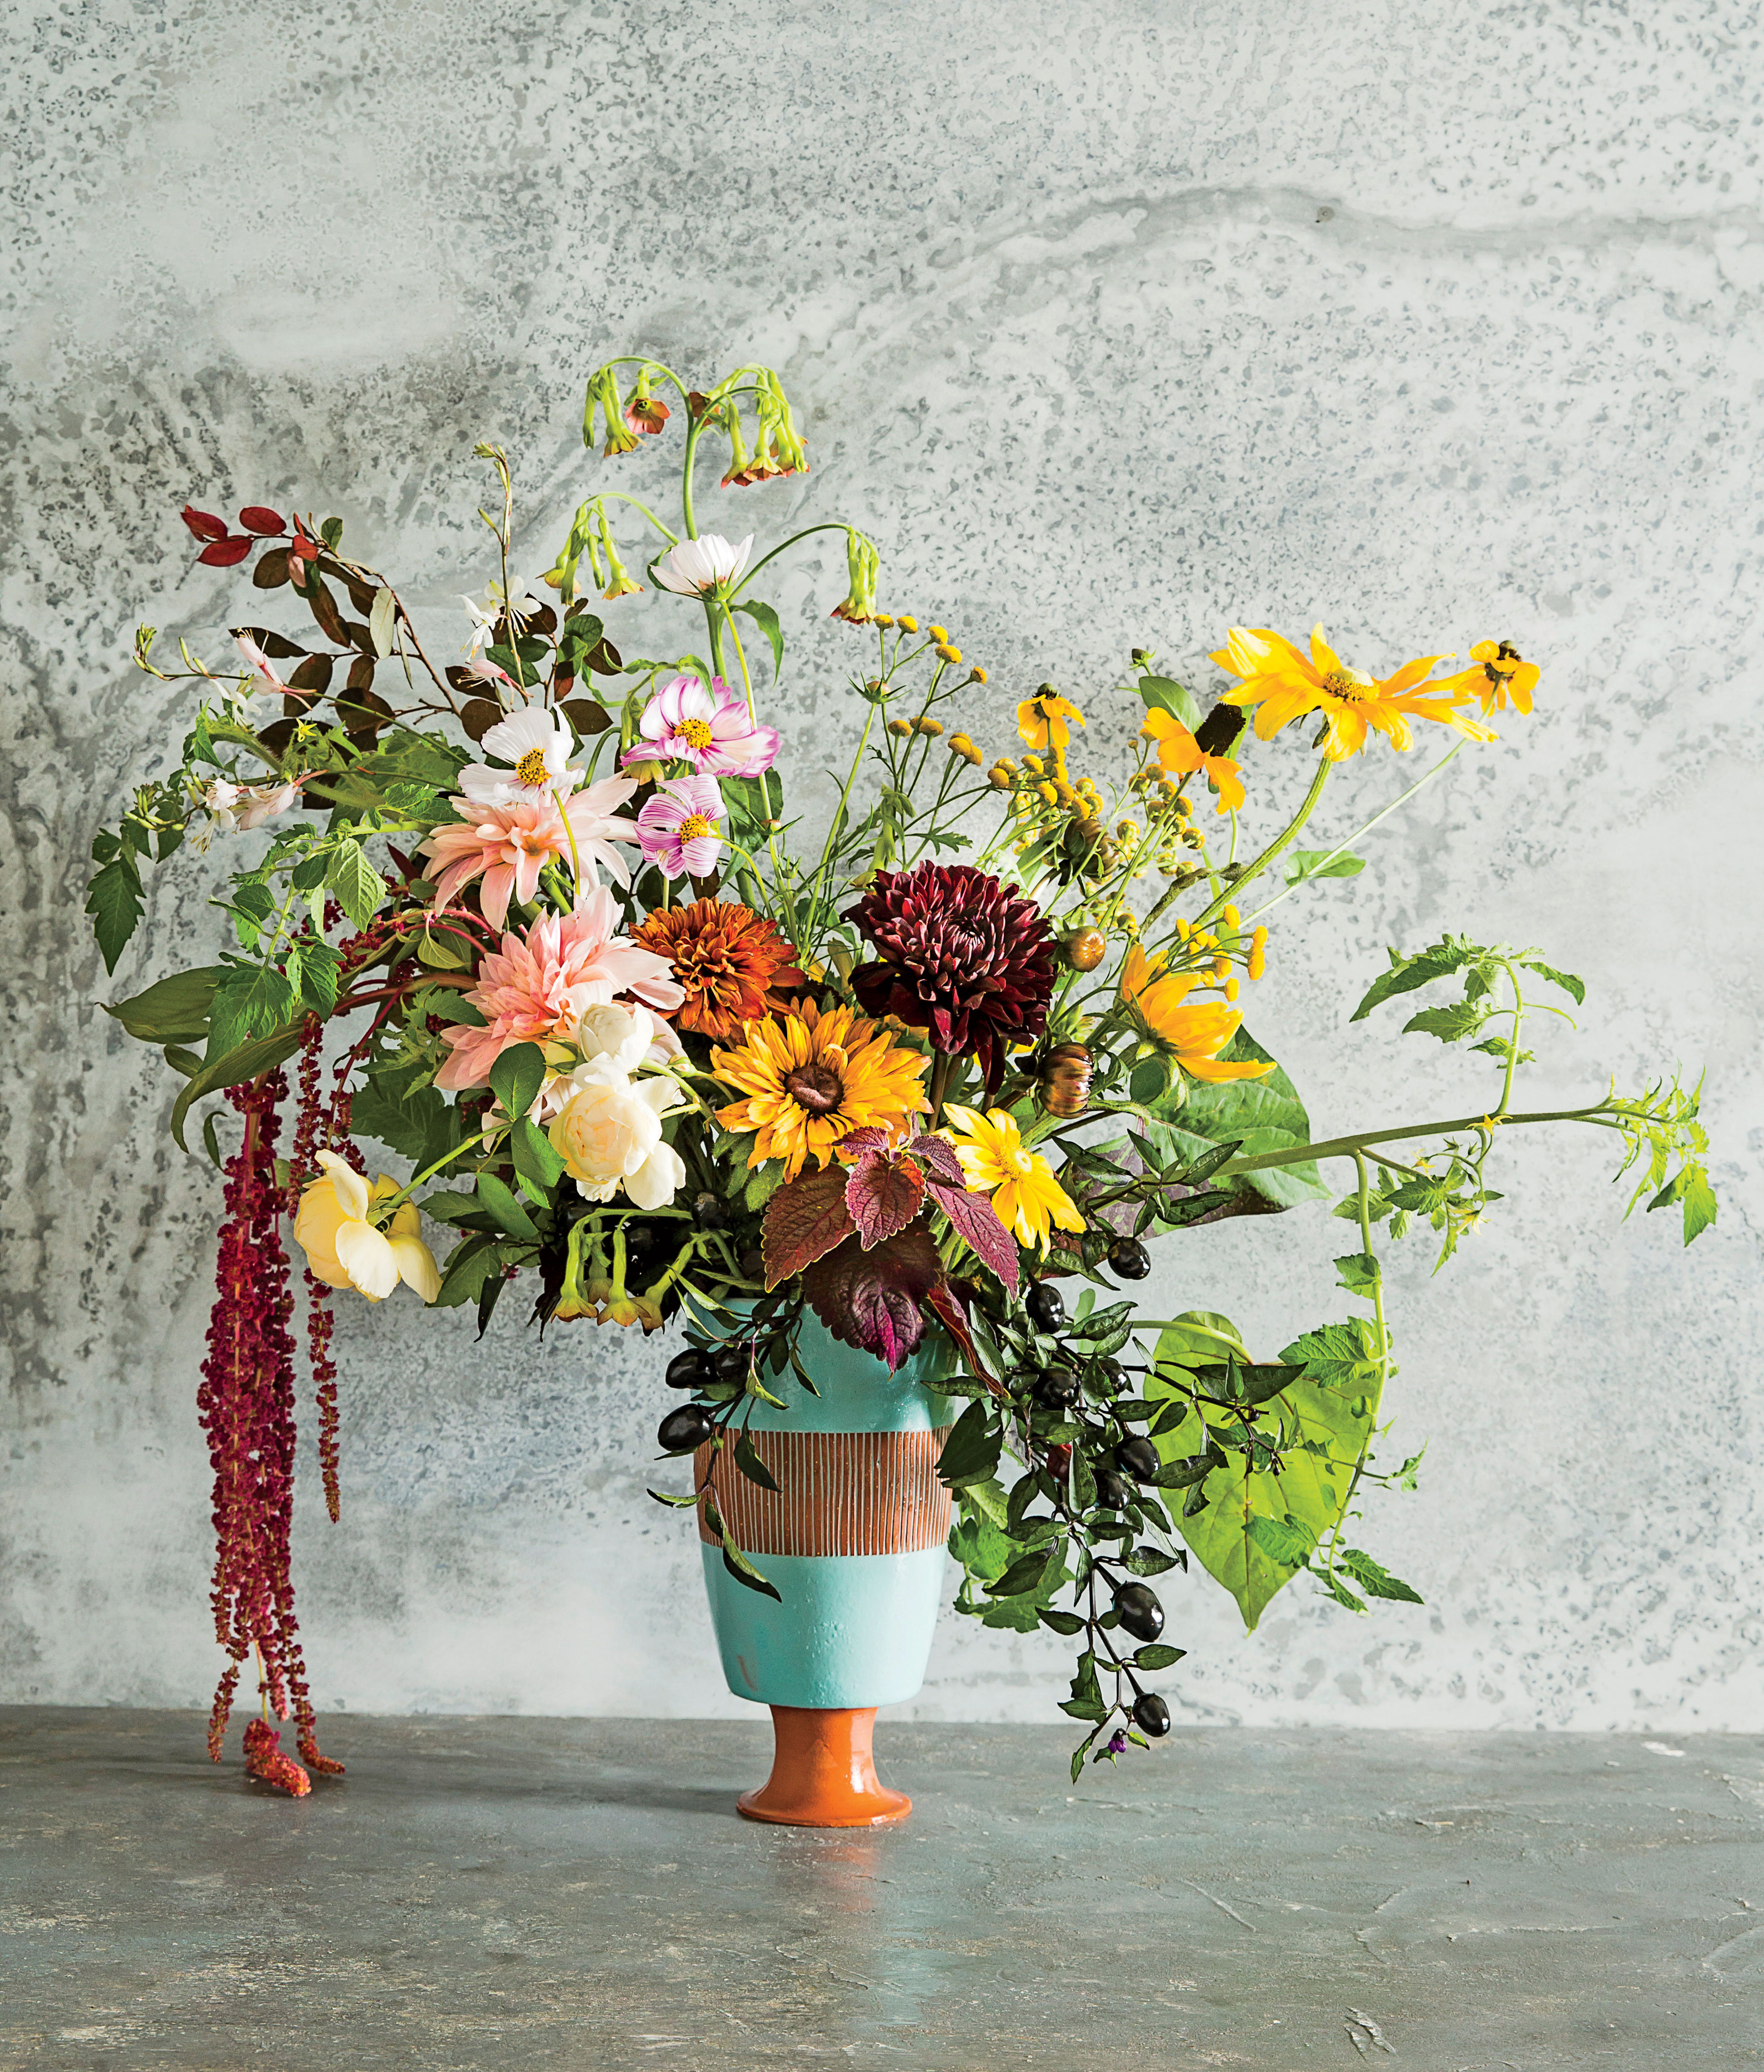 How to Arrange Flowers from Beautiful Garden Blooms - Southern Living